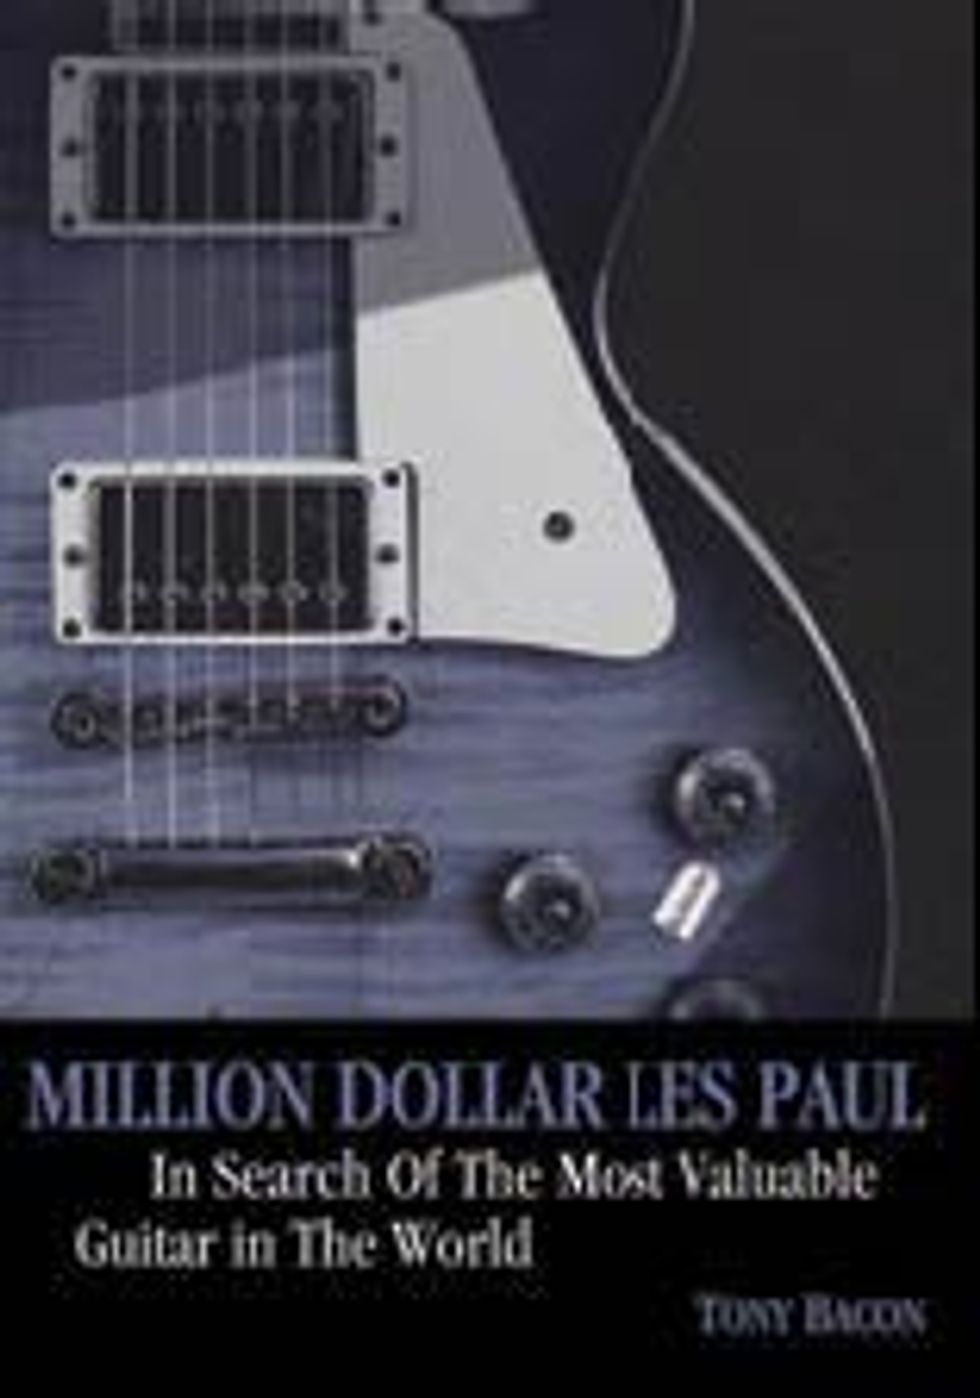 Million Dollar Les Paul